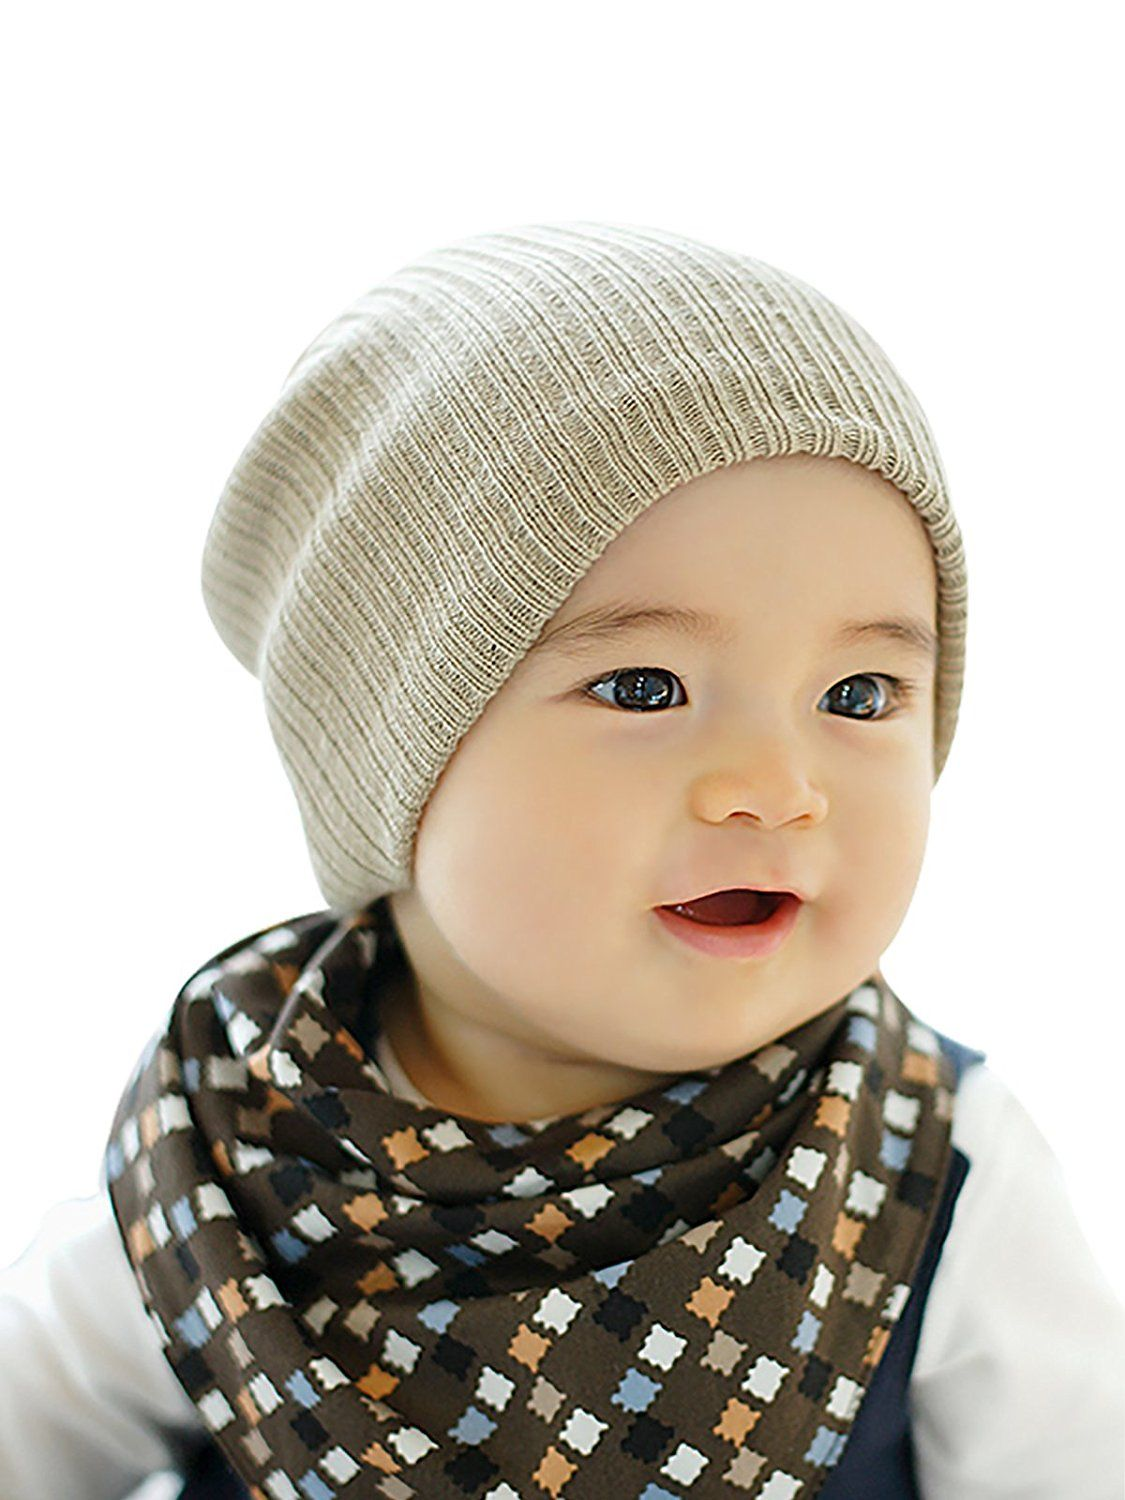 97fa08d1990 Amazon.com  Zando Lovely Baby s Warm Solid Color Hat Winter Toddler Knitted  Caps Comfort Cute Infant Beaine Hat for Baby Girls Beige One Size  Clothing